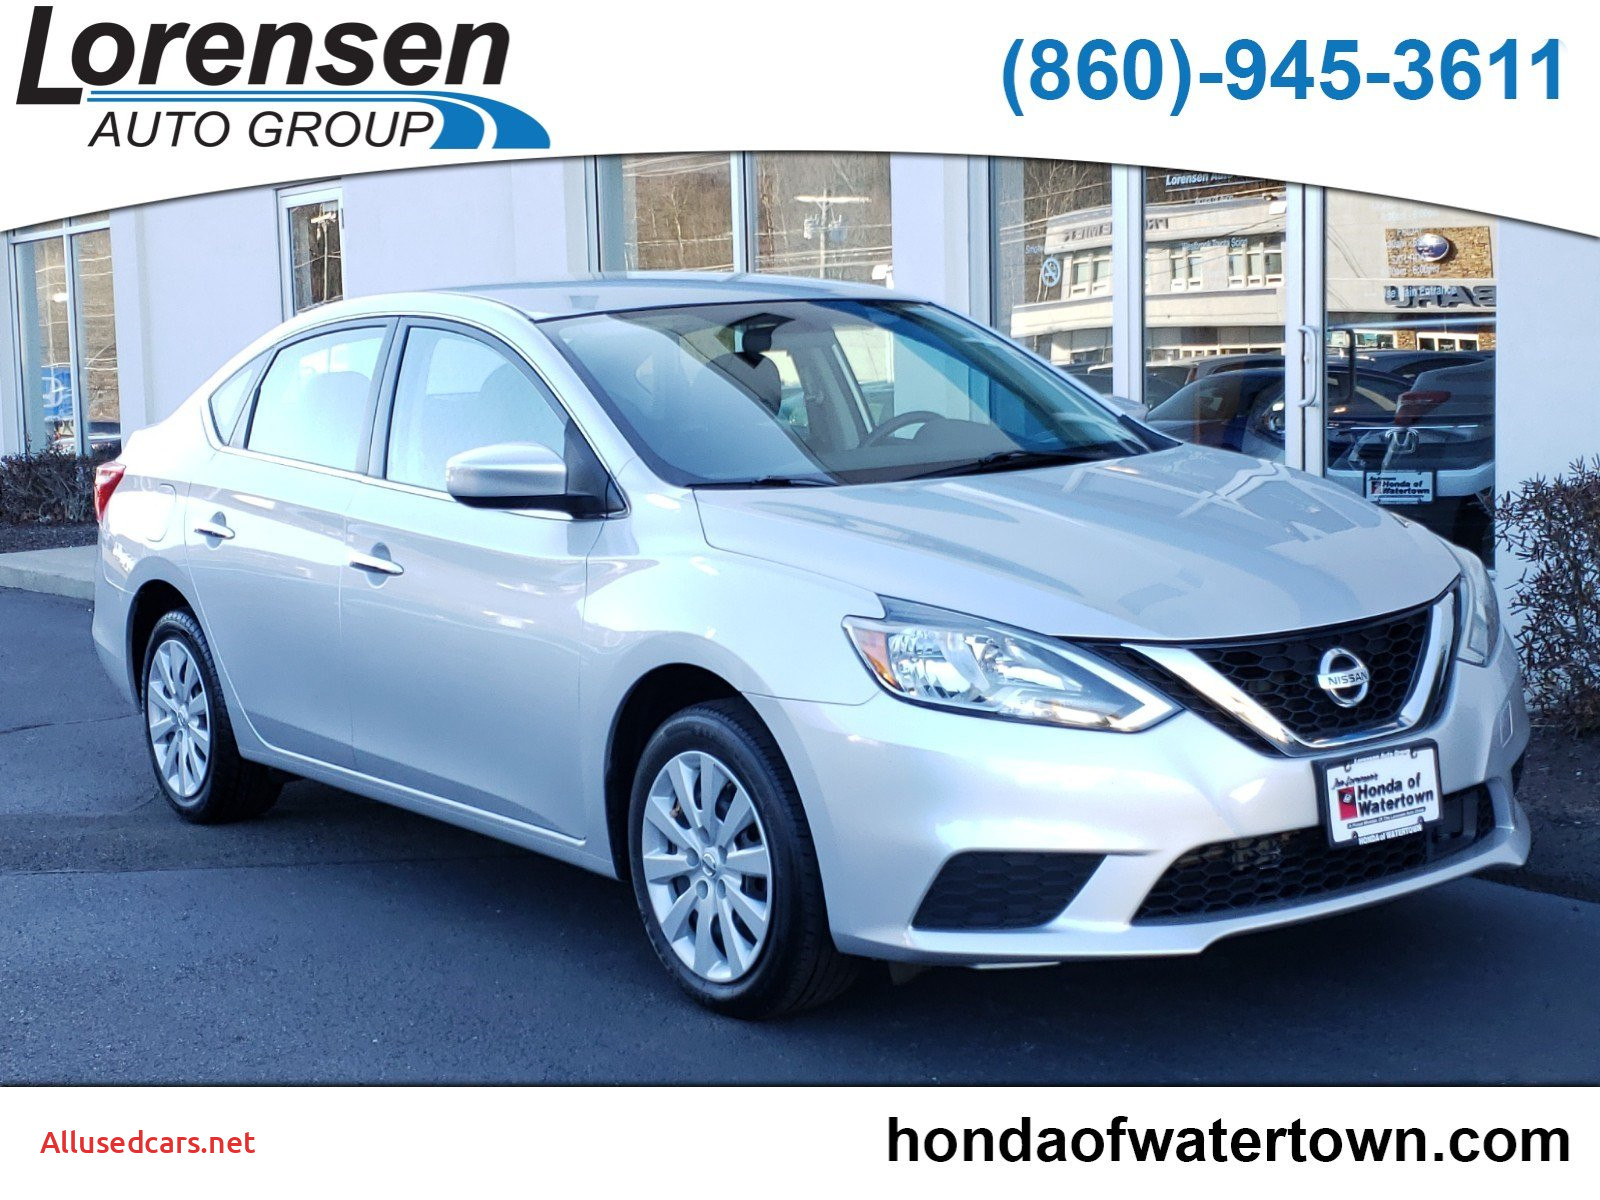 Nissan Sentra for Sale Luxury Pre Owned 2018 Nissan Sentra S Fwd 4dr Car